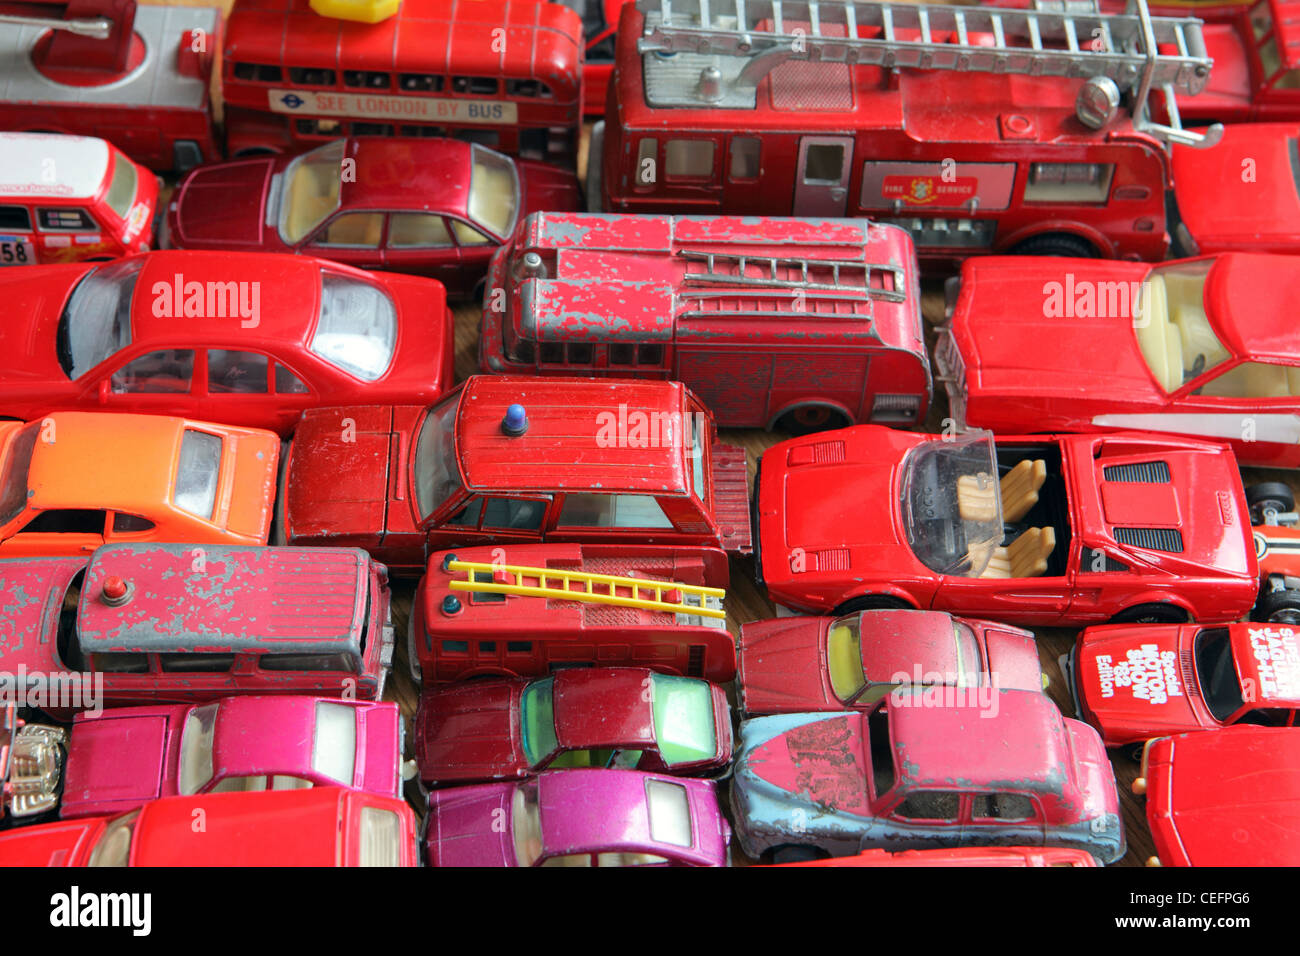 Different Shades Of Red traffic jam of red model cars, all different shades of red, home